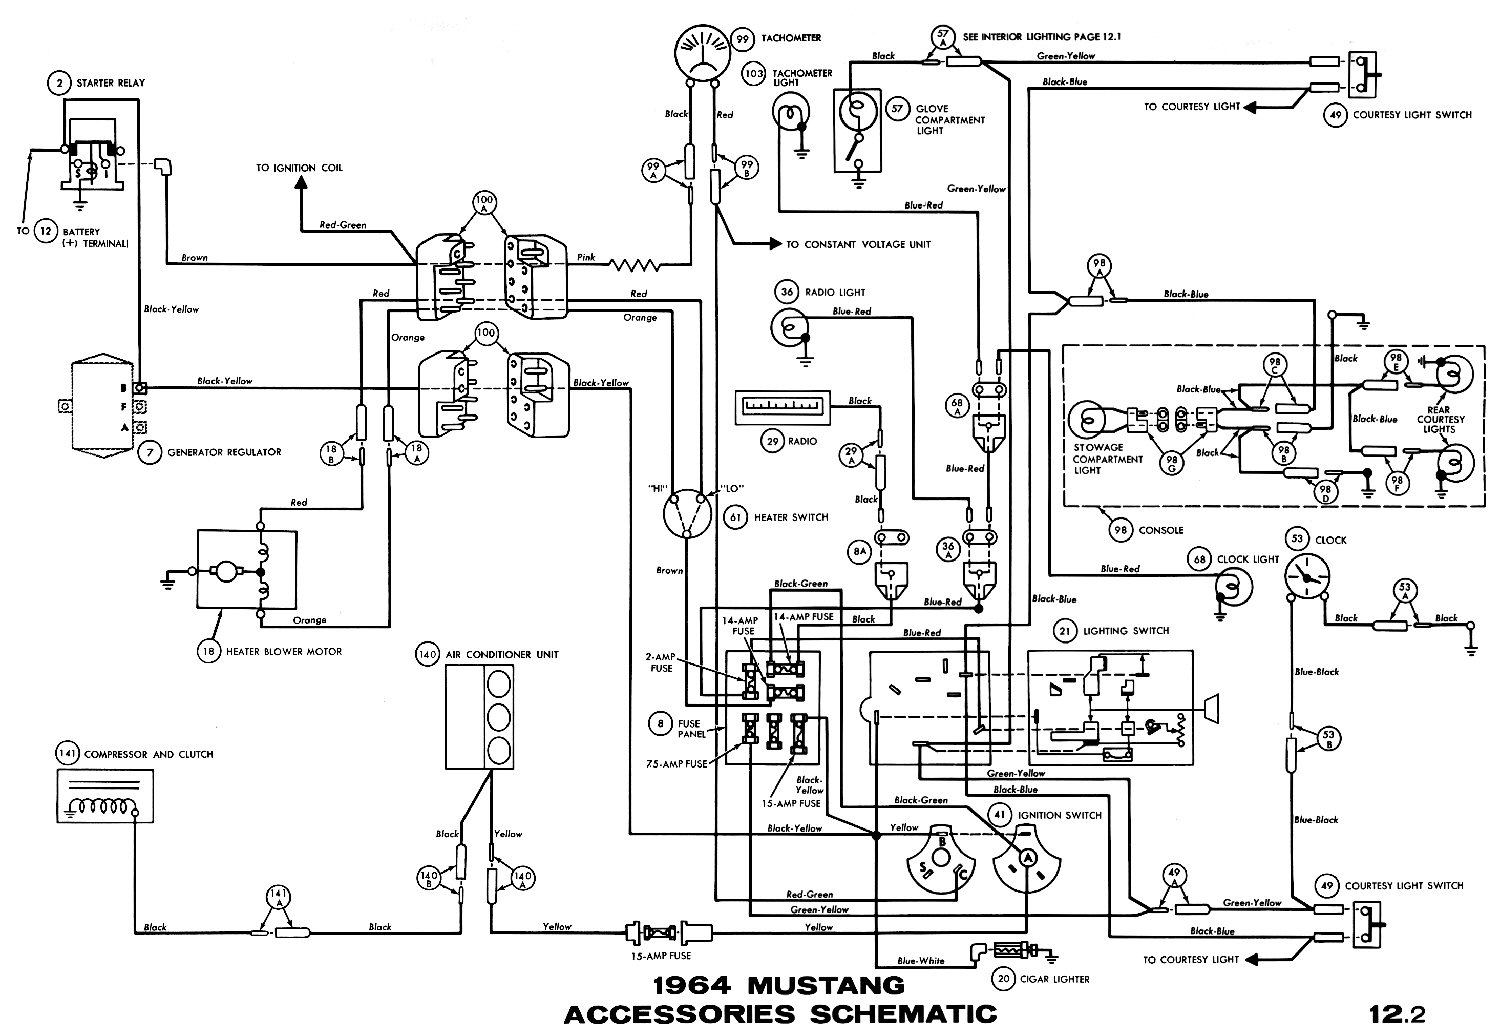 1964m 66 mustang wiring diagram radio tape 66 mustang turn signal wiring 1965 f100 wiring harness at creativeand.co